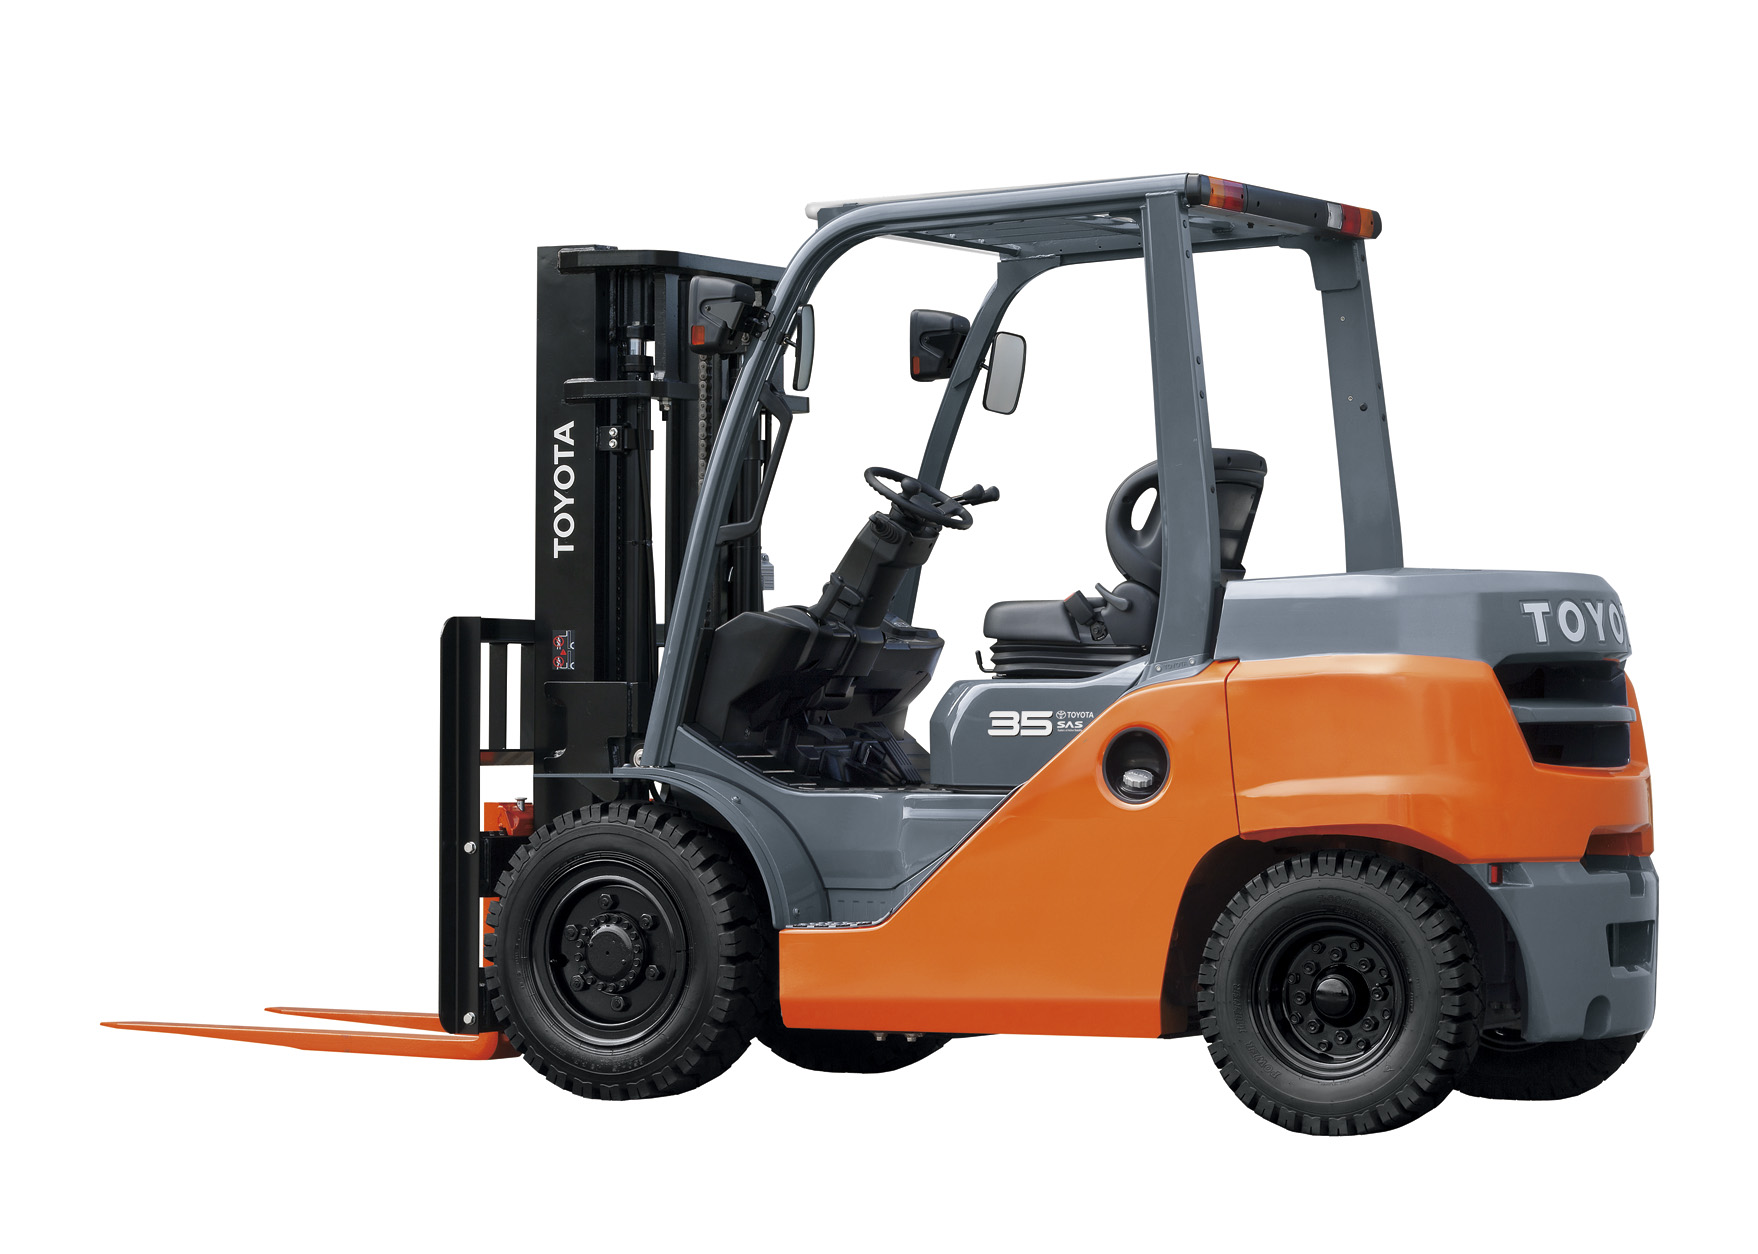 heli forklift with Toyota 35 50 Tonne 8 Series 4 Wheel Forklift on Plat Transmisi Forklift P566863 as well Stapler Gabelstapler LINDE H80T 12052514523078291500 in addition Core Electric Forklift further Watch besides .